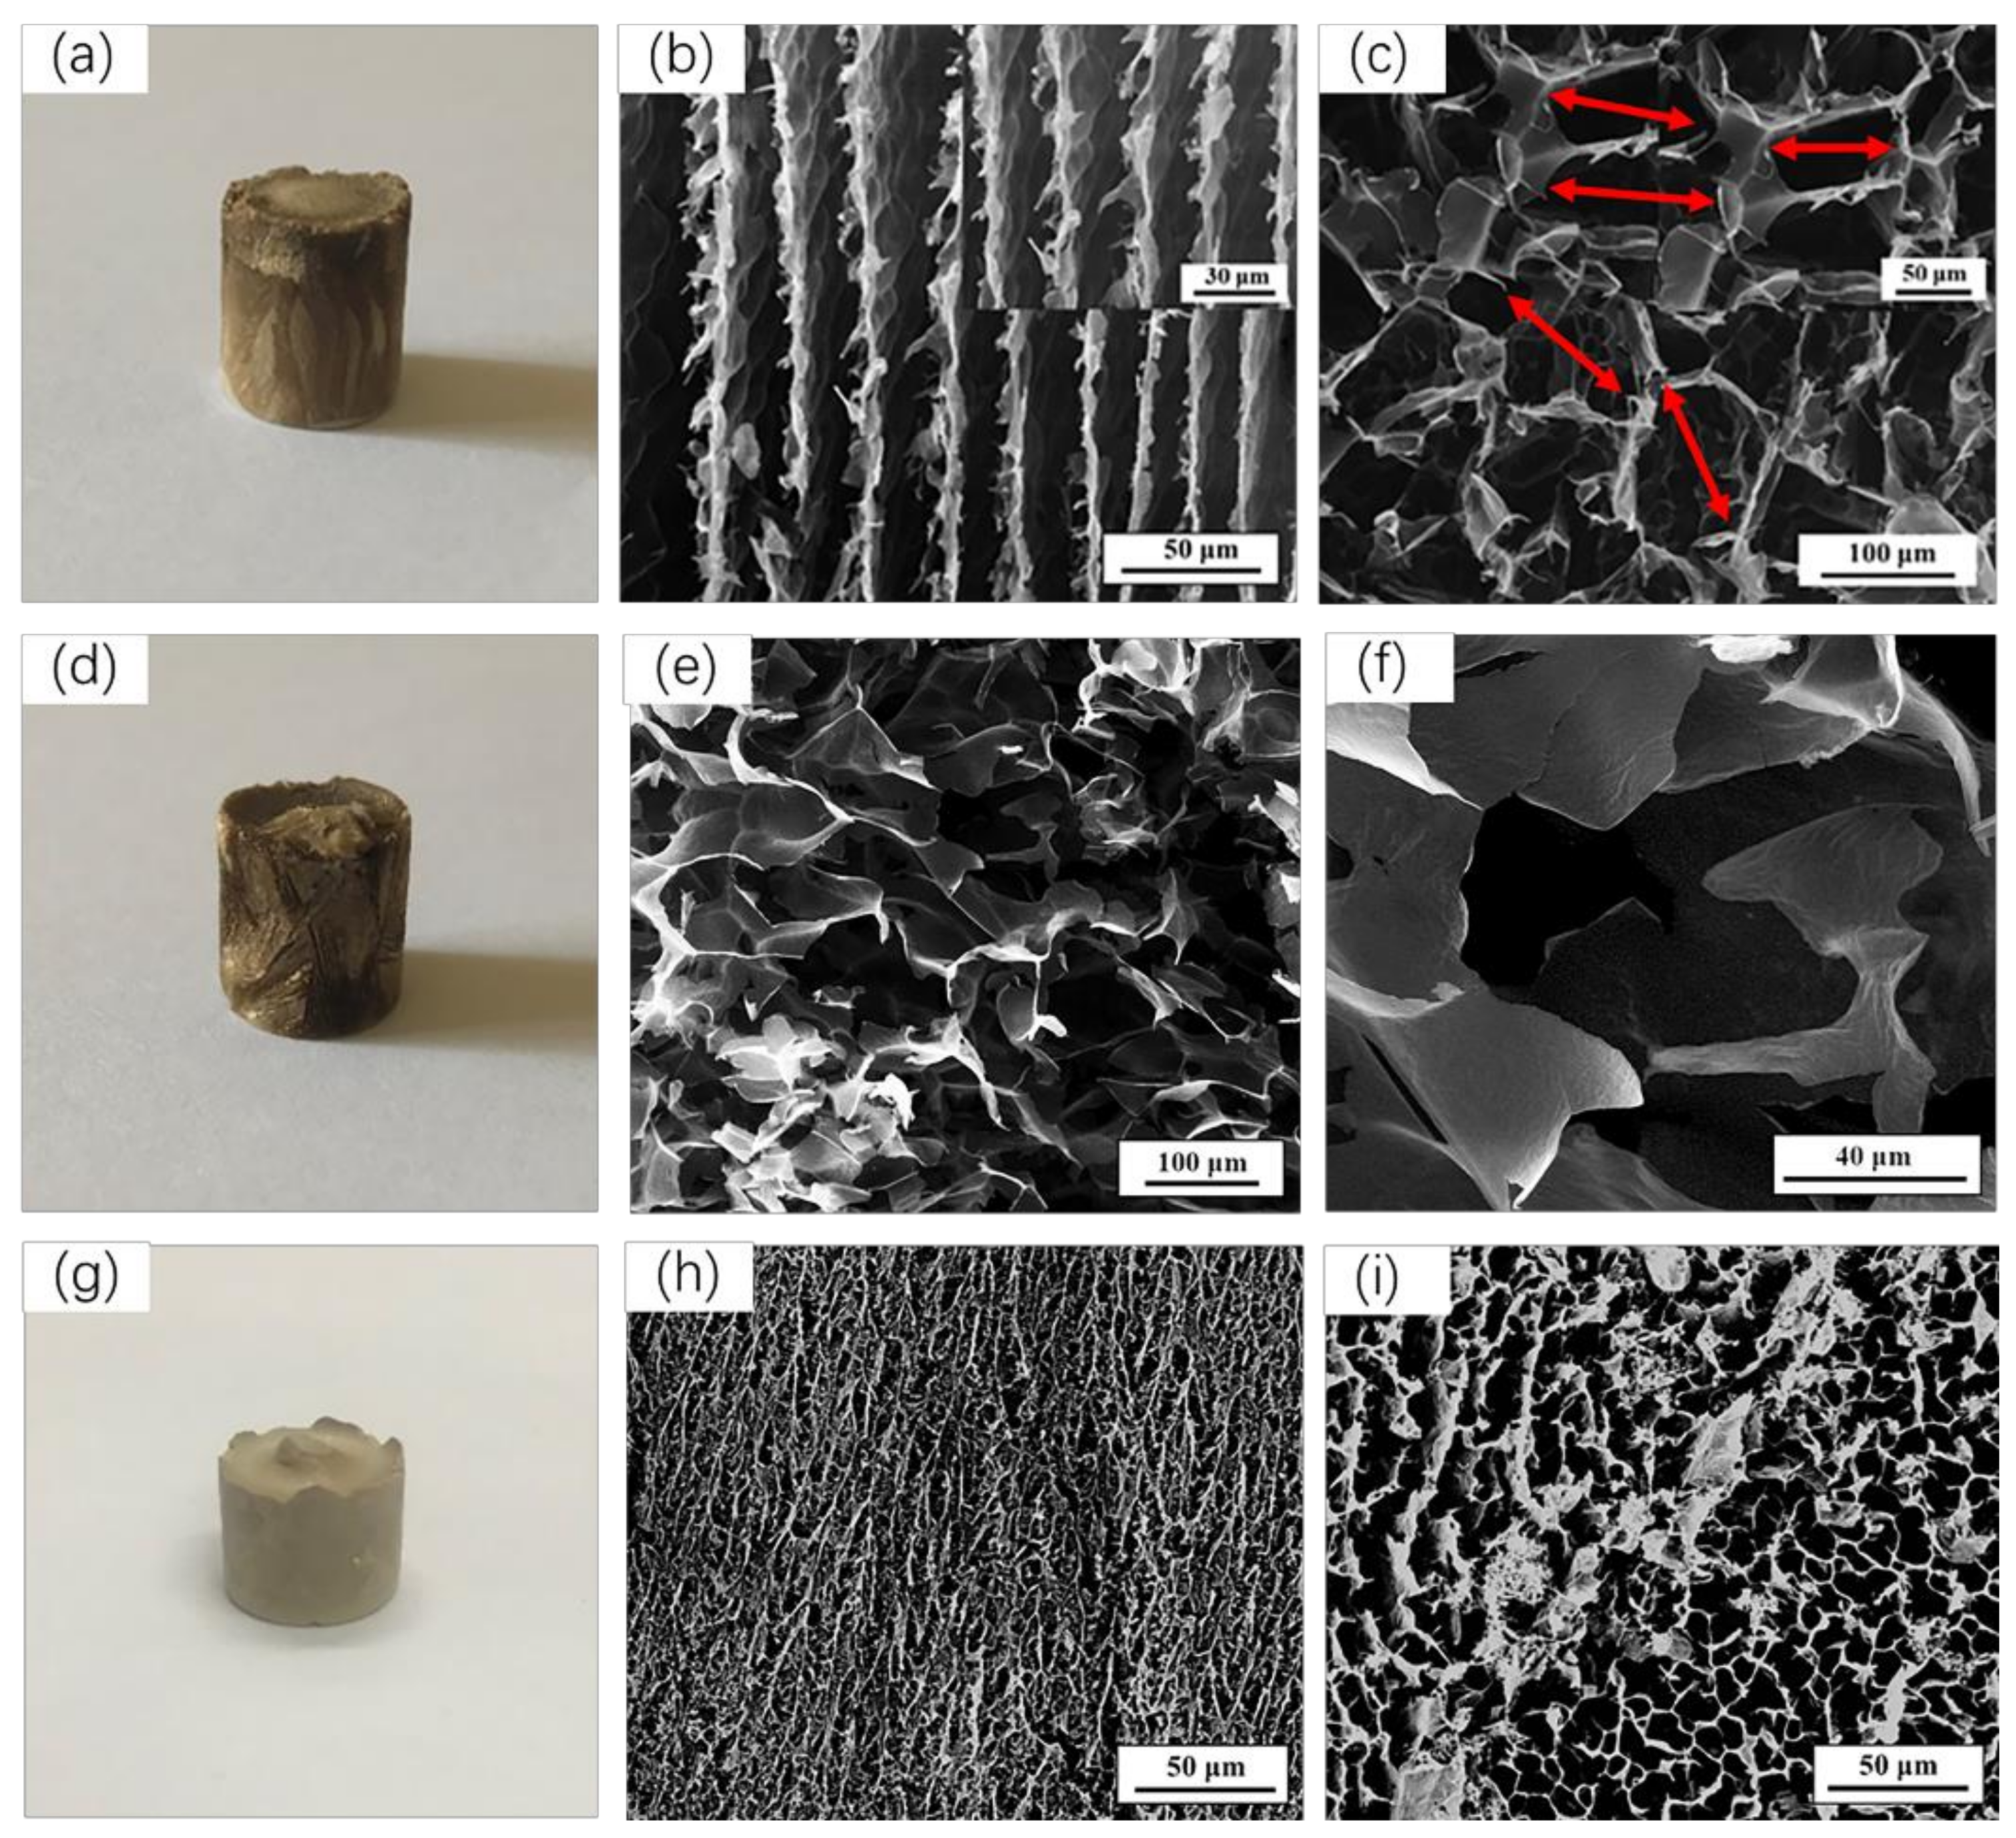 Polymers | Free Full-Text | Anisotropic Cellulose Nanofibers